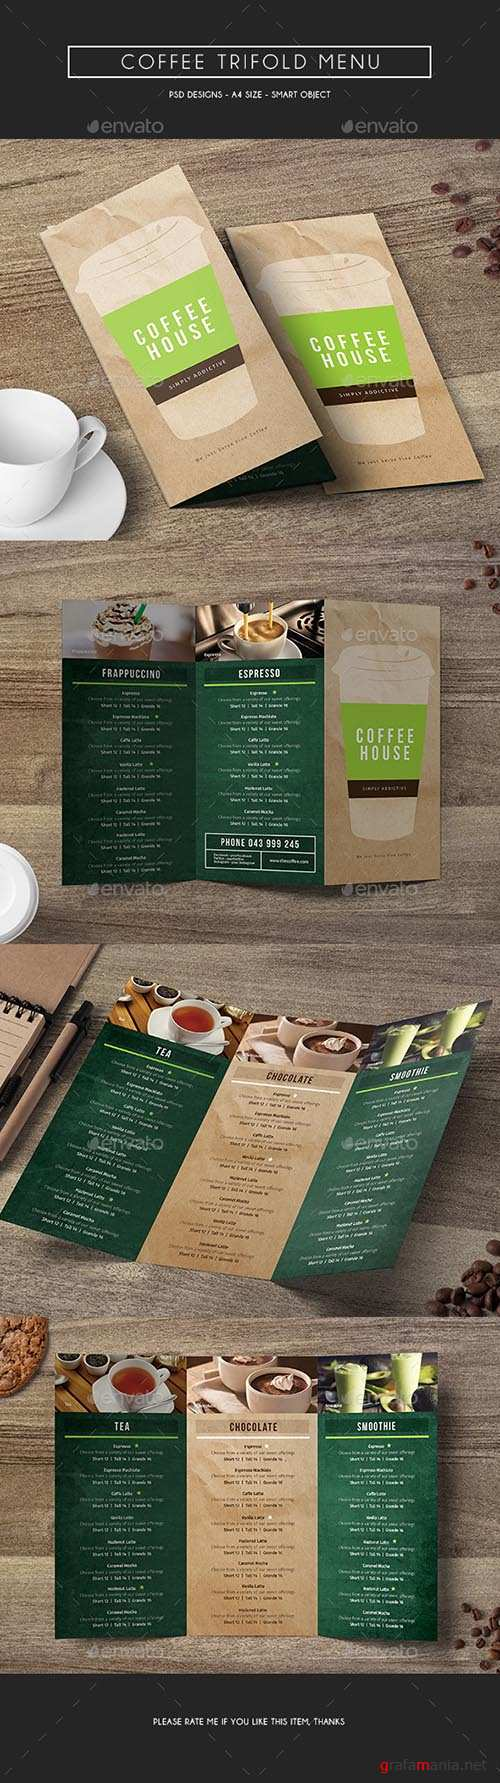 GR - Coffee Trifold Menu 14846094